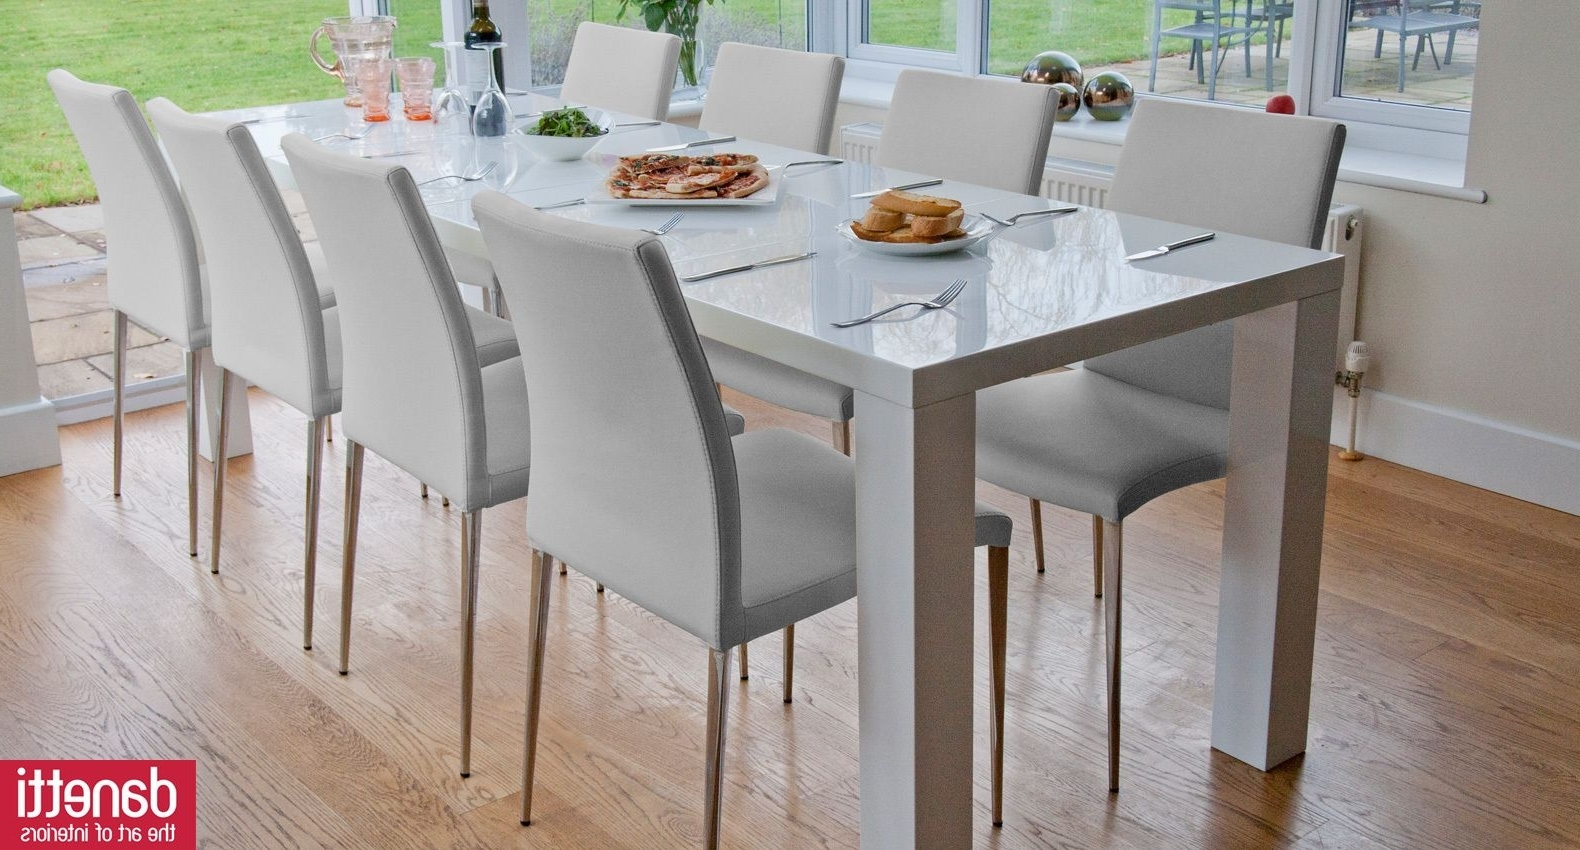 Future Home With Regard To Well Known High Gloss Dining Sets (View 21 of 25)